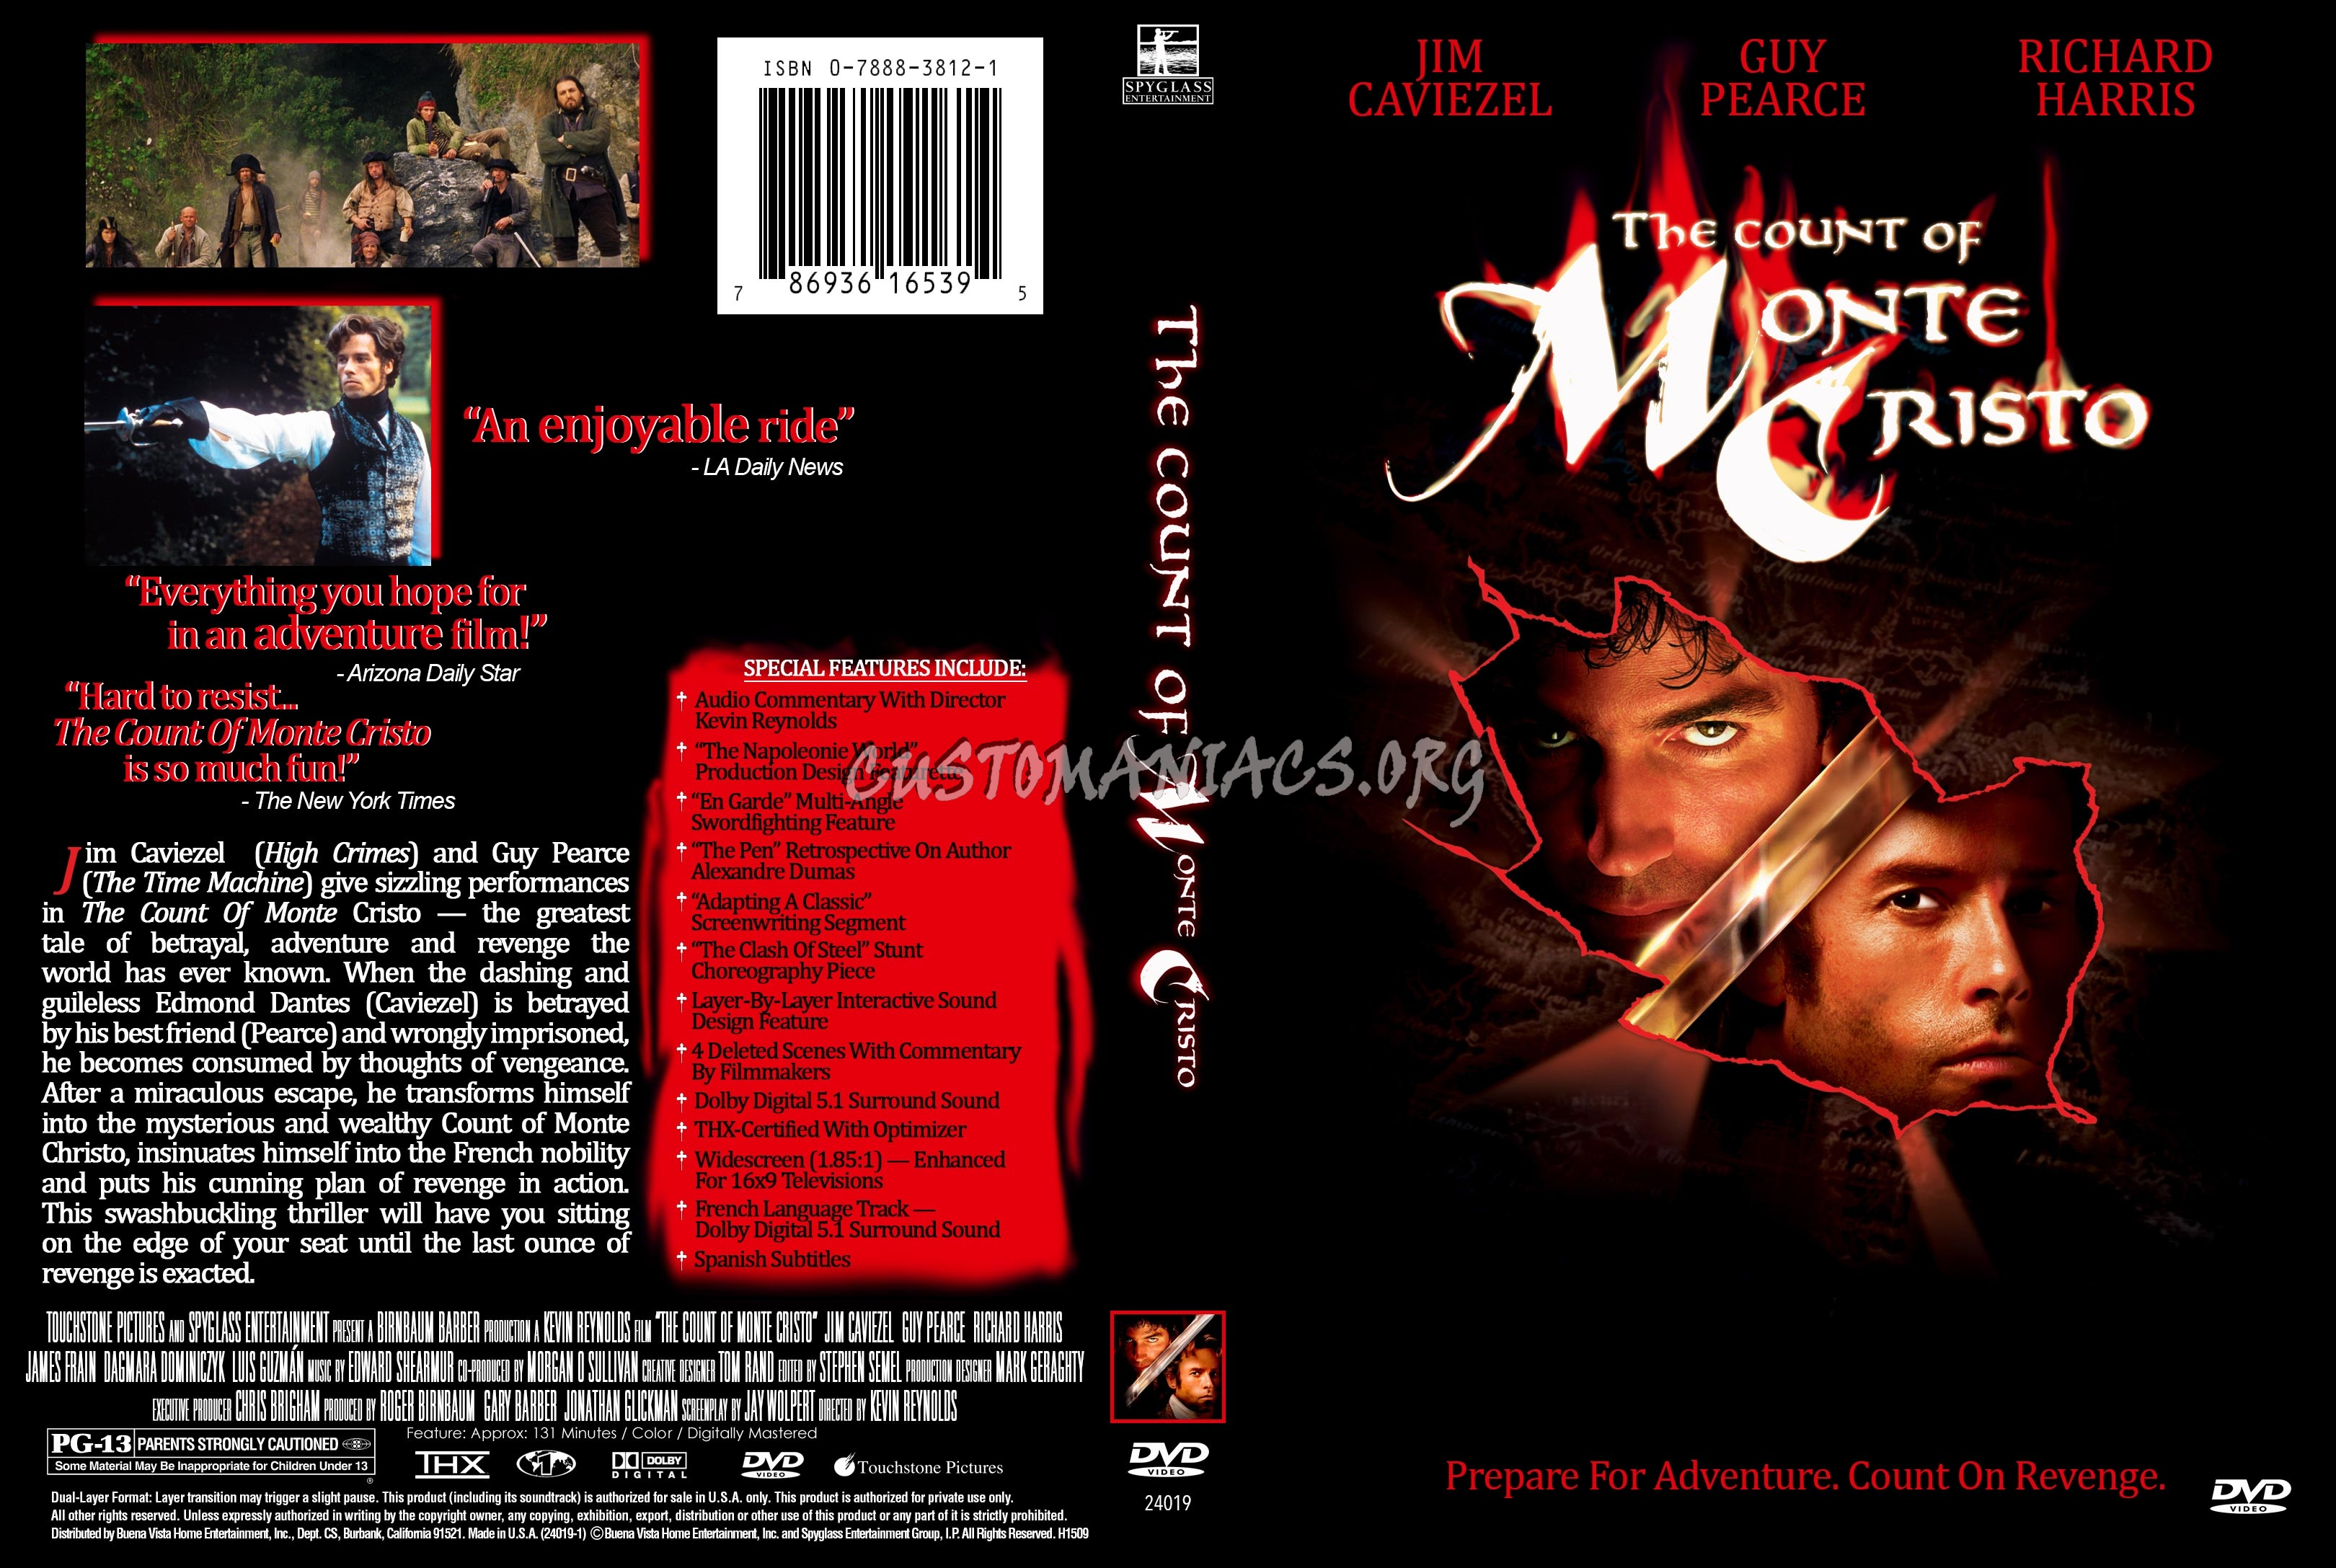 count of monte cristo essay vengeance The count of monte cristo the technique plot presents the theme of vengeance in the count of monte cristo and the v for vendetta while get your custom essay.